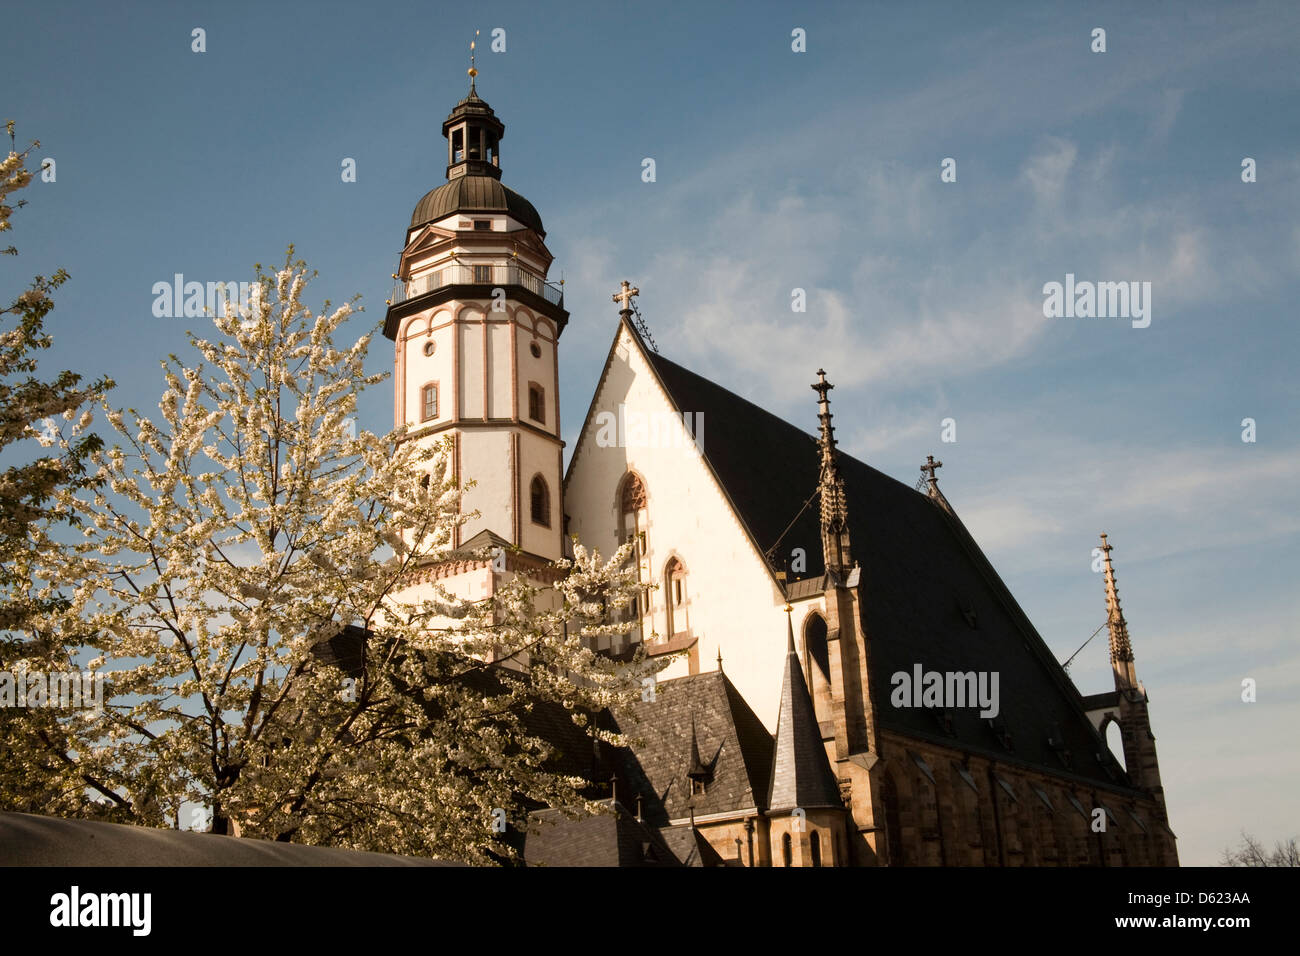 Cherry trees abloom and the famed St. Thomas Church known as the Church of Bach in Leipzig, Germany. Stock Photo